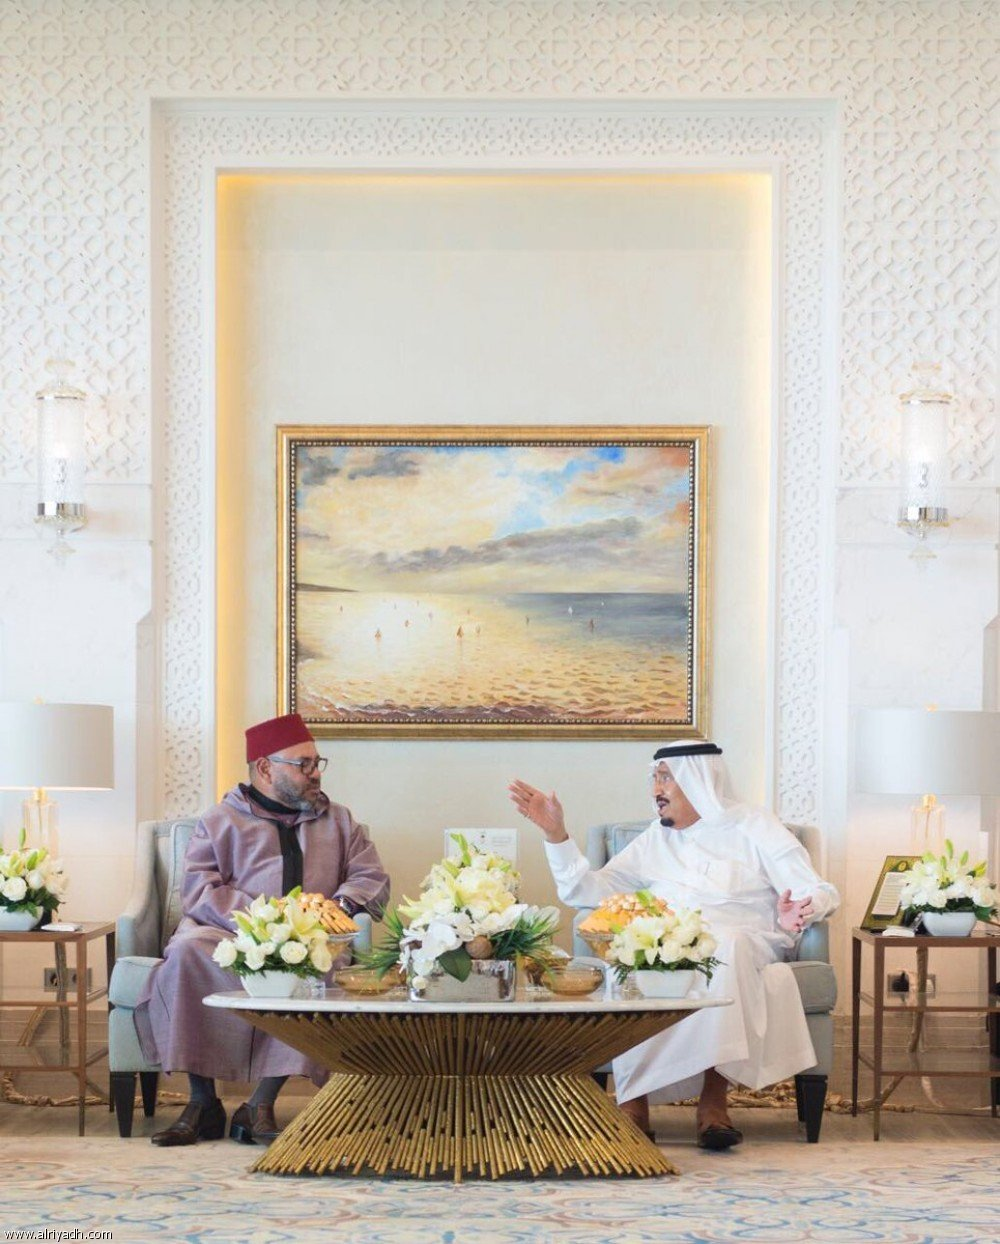 PHOTOS: Saudi leader meets Moroccan monarch